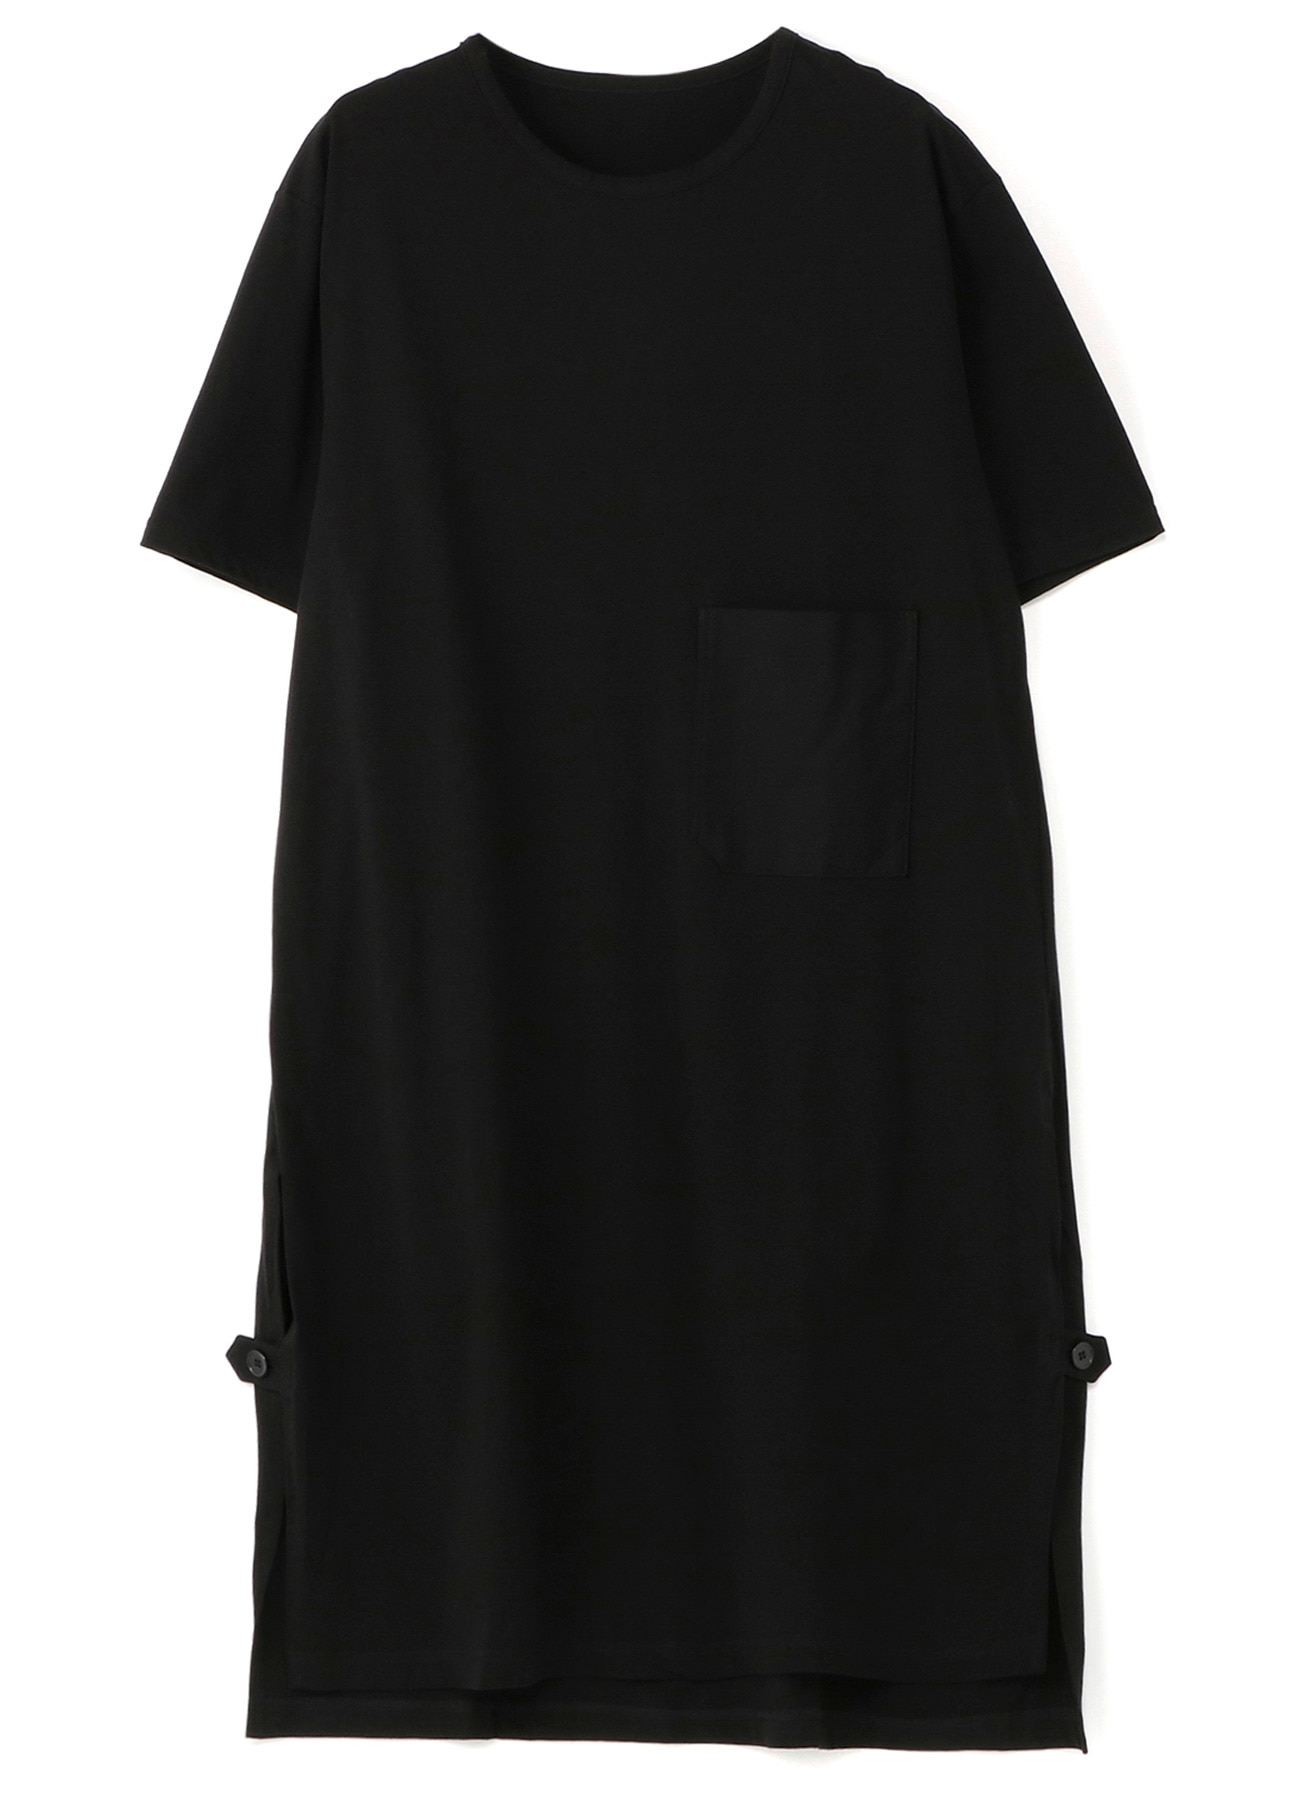 30 / cotton Jersey Pocket Long T